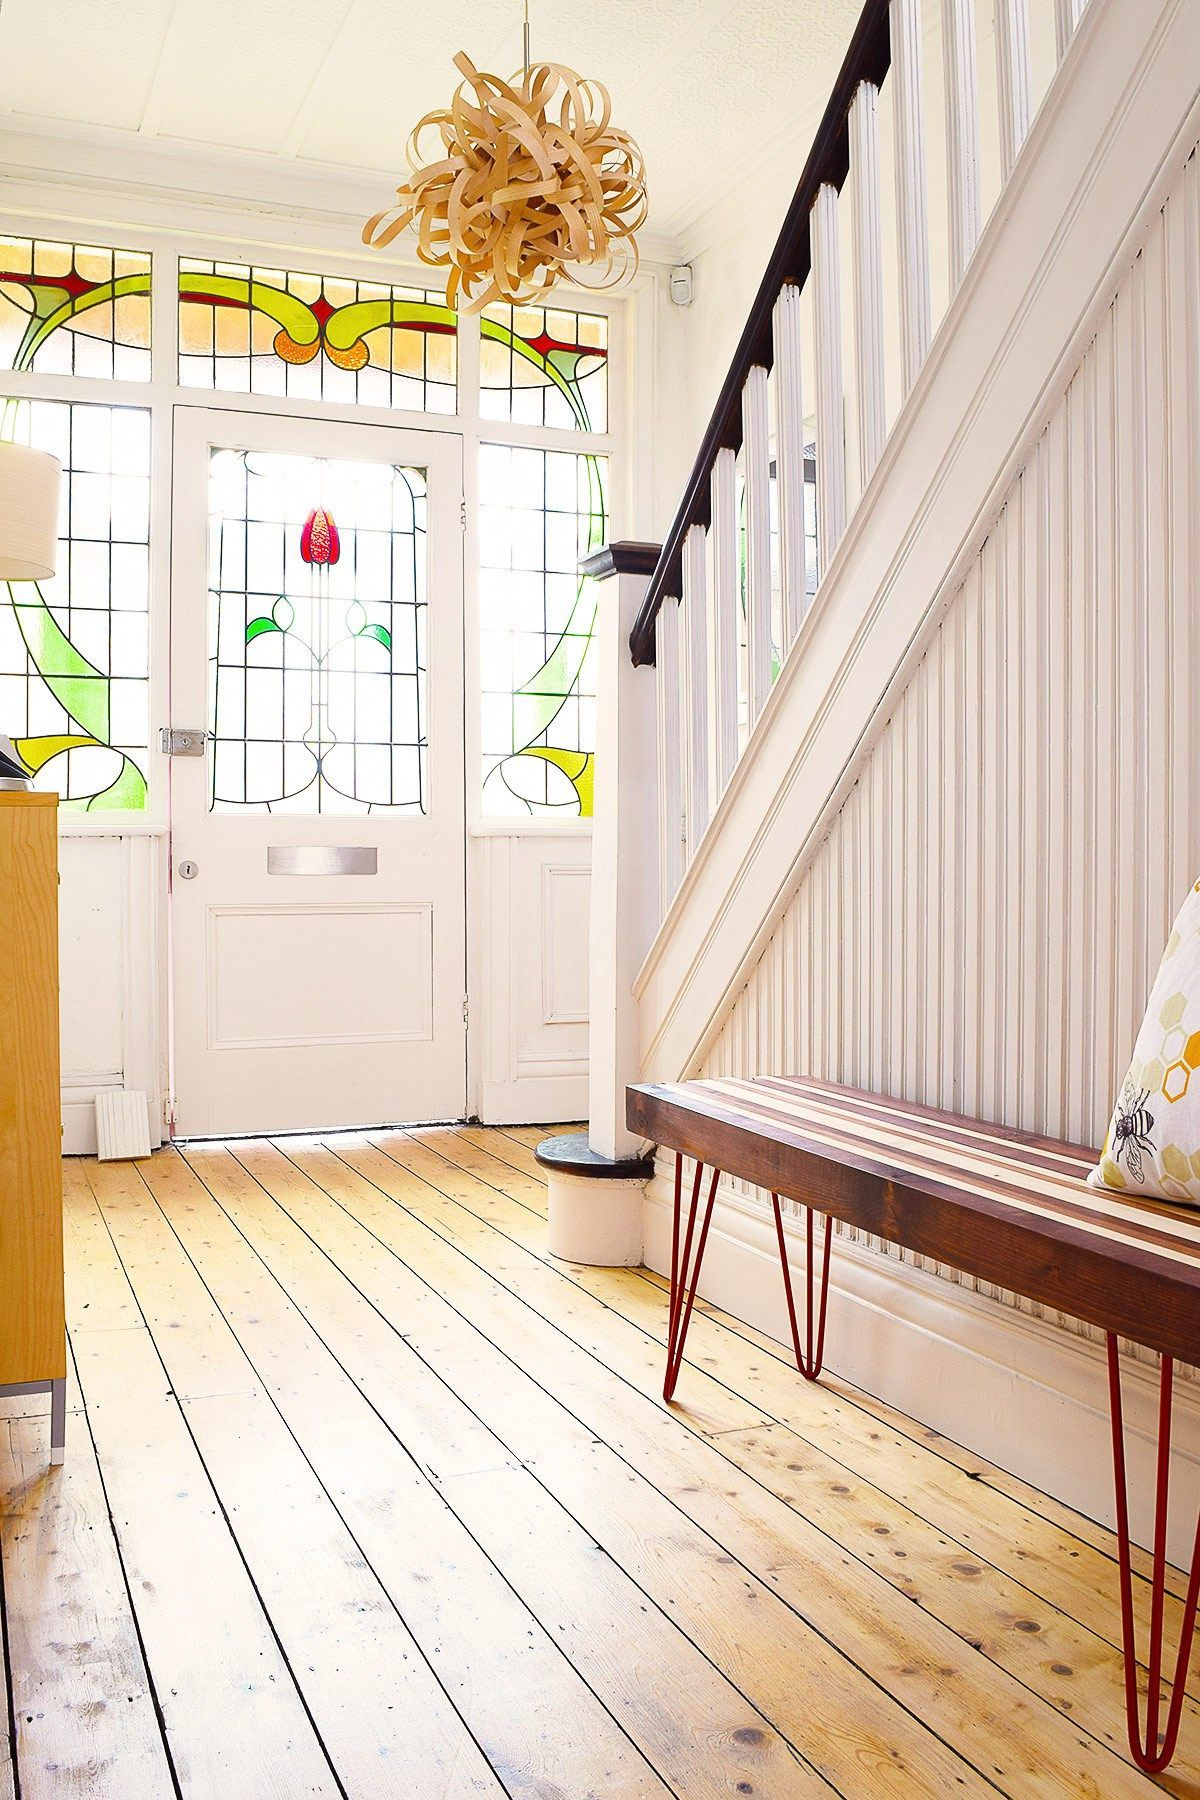 Edwardian hallway lighting  Edwardian Hallway With Stained Glass and Wooden Bench  Little House